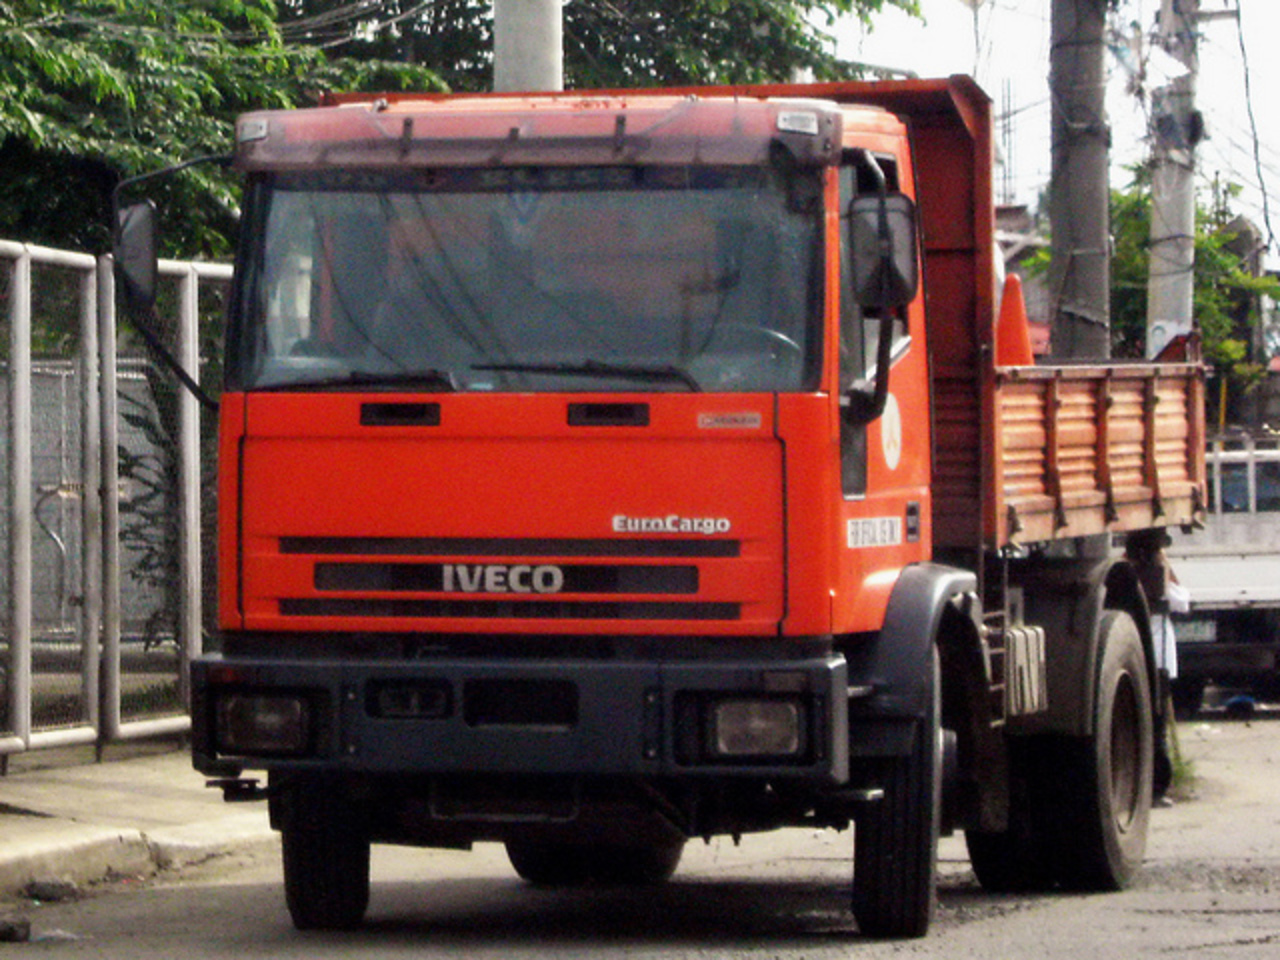 IVECO EuroCargo | Flickr - Photo Sharing!